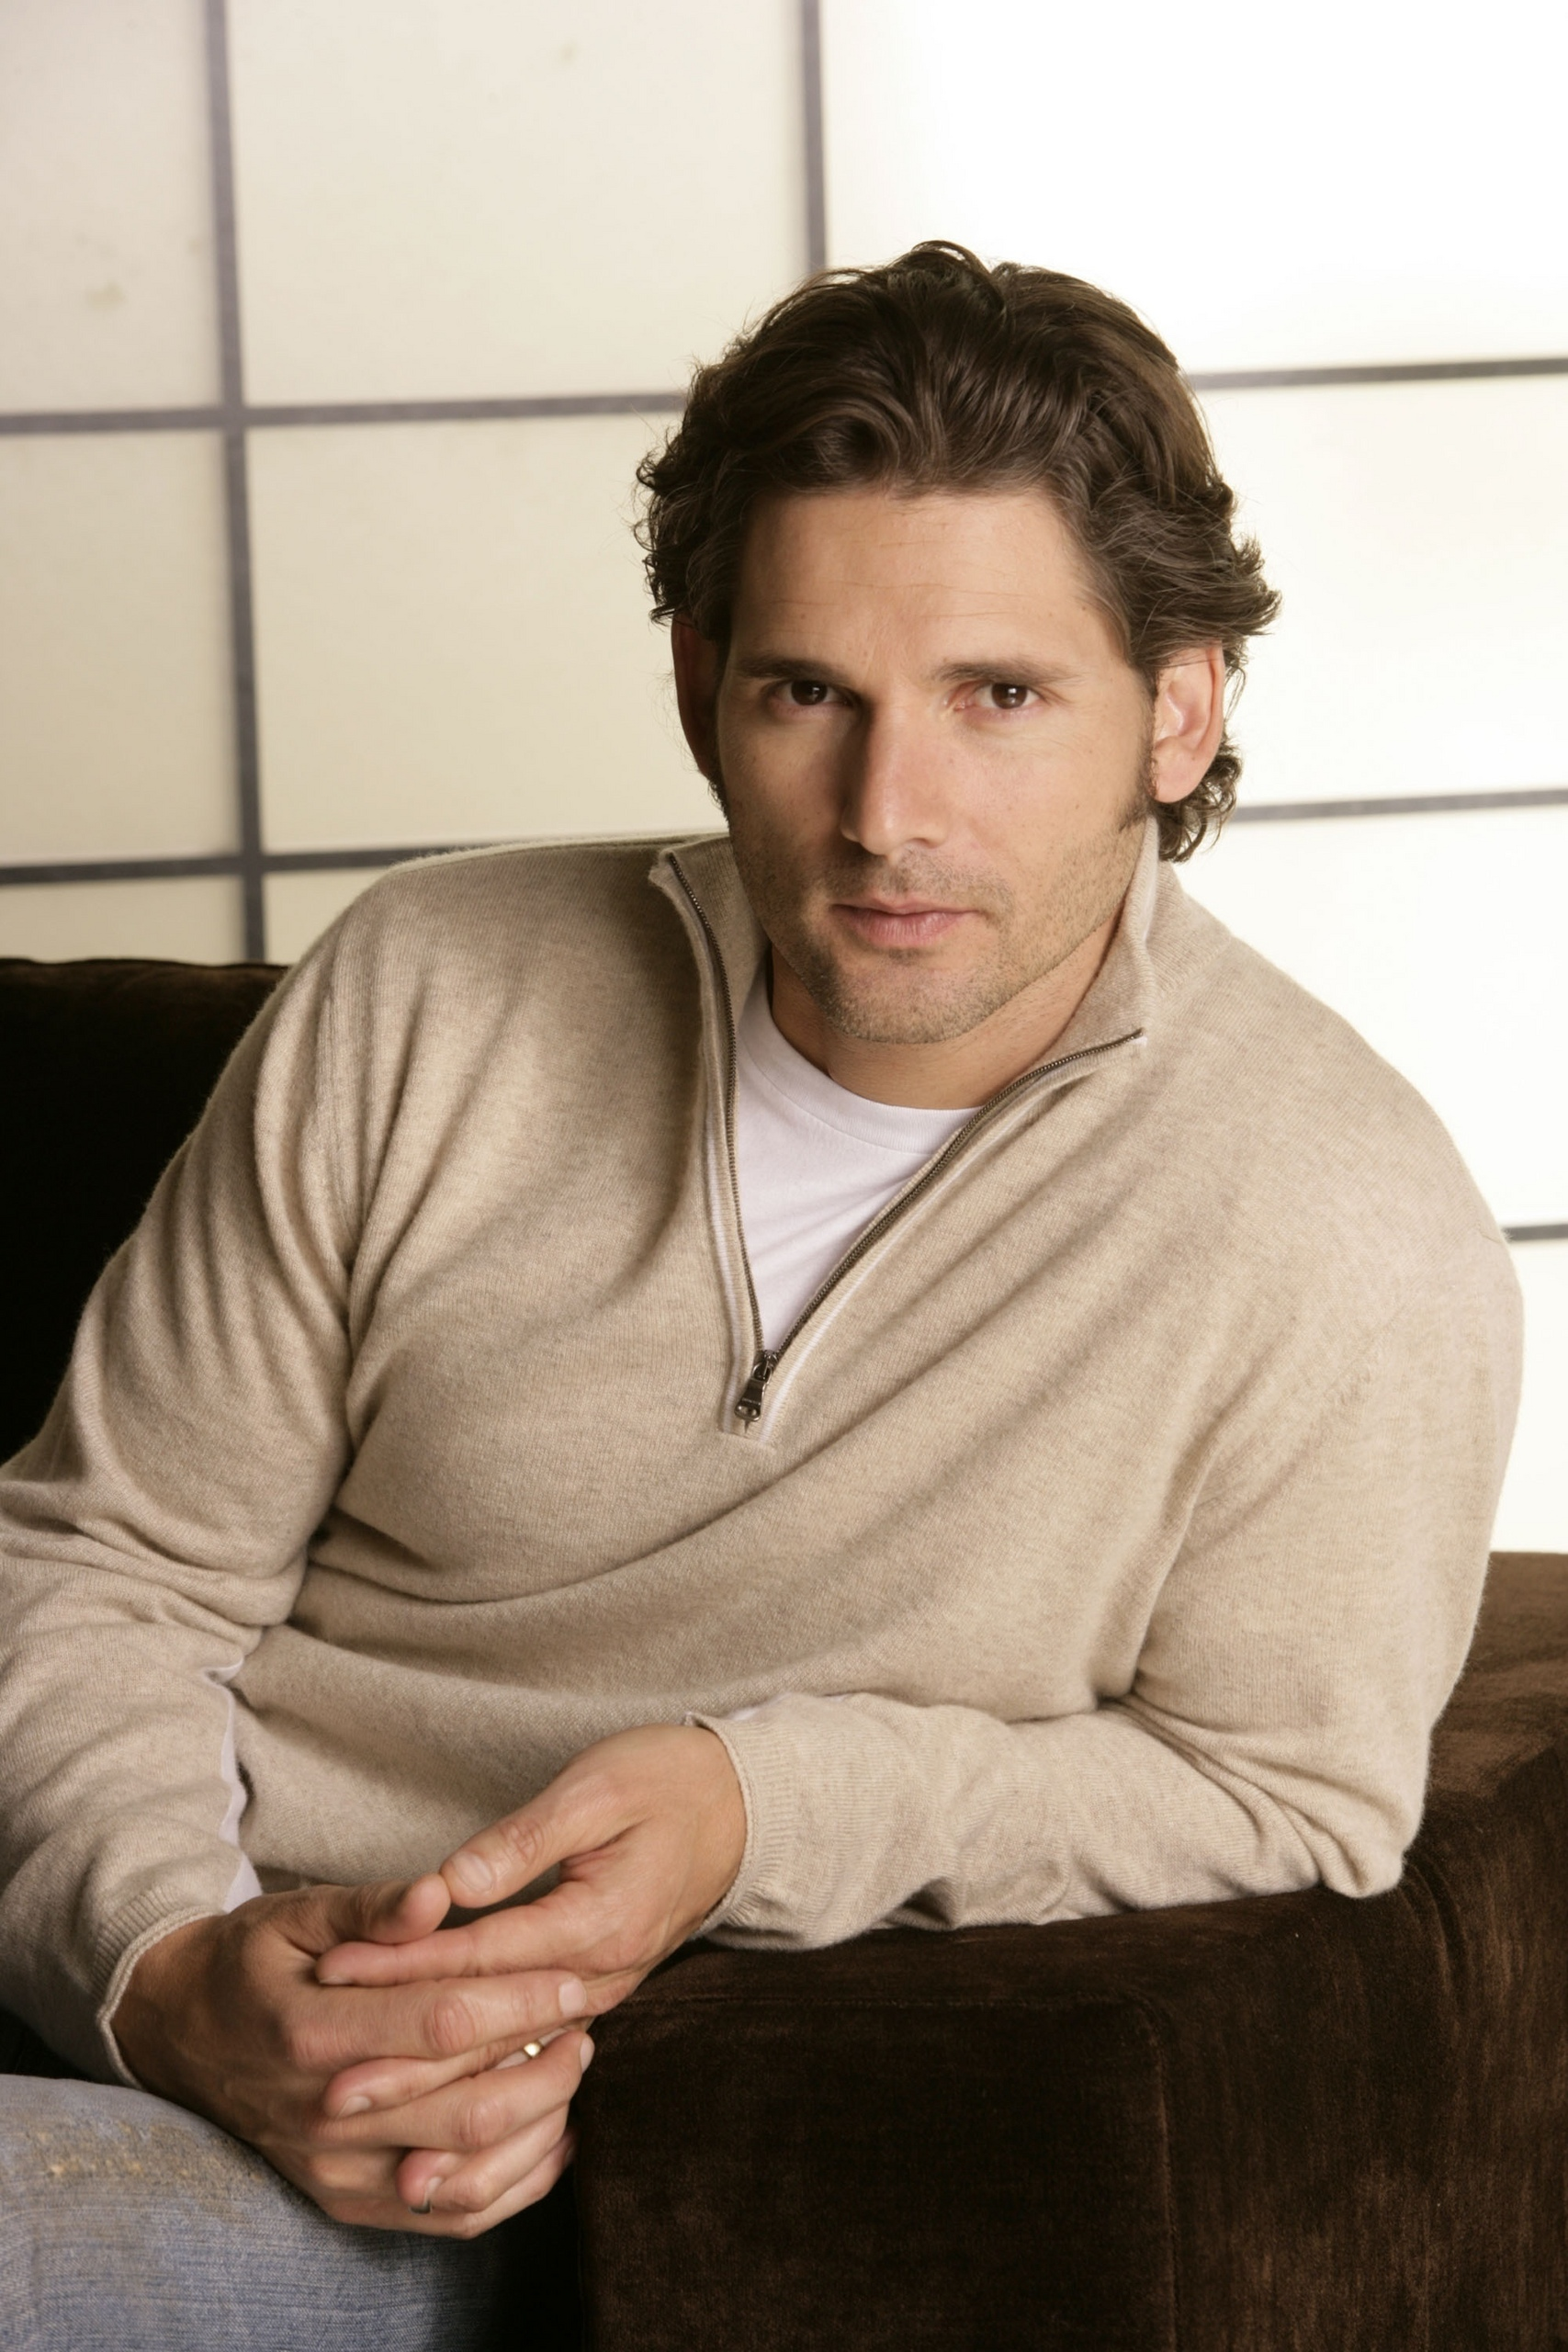 Woman looks Eric bana photos sexy